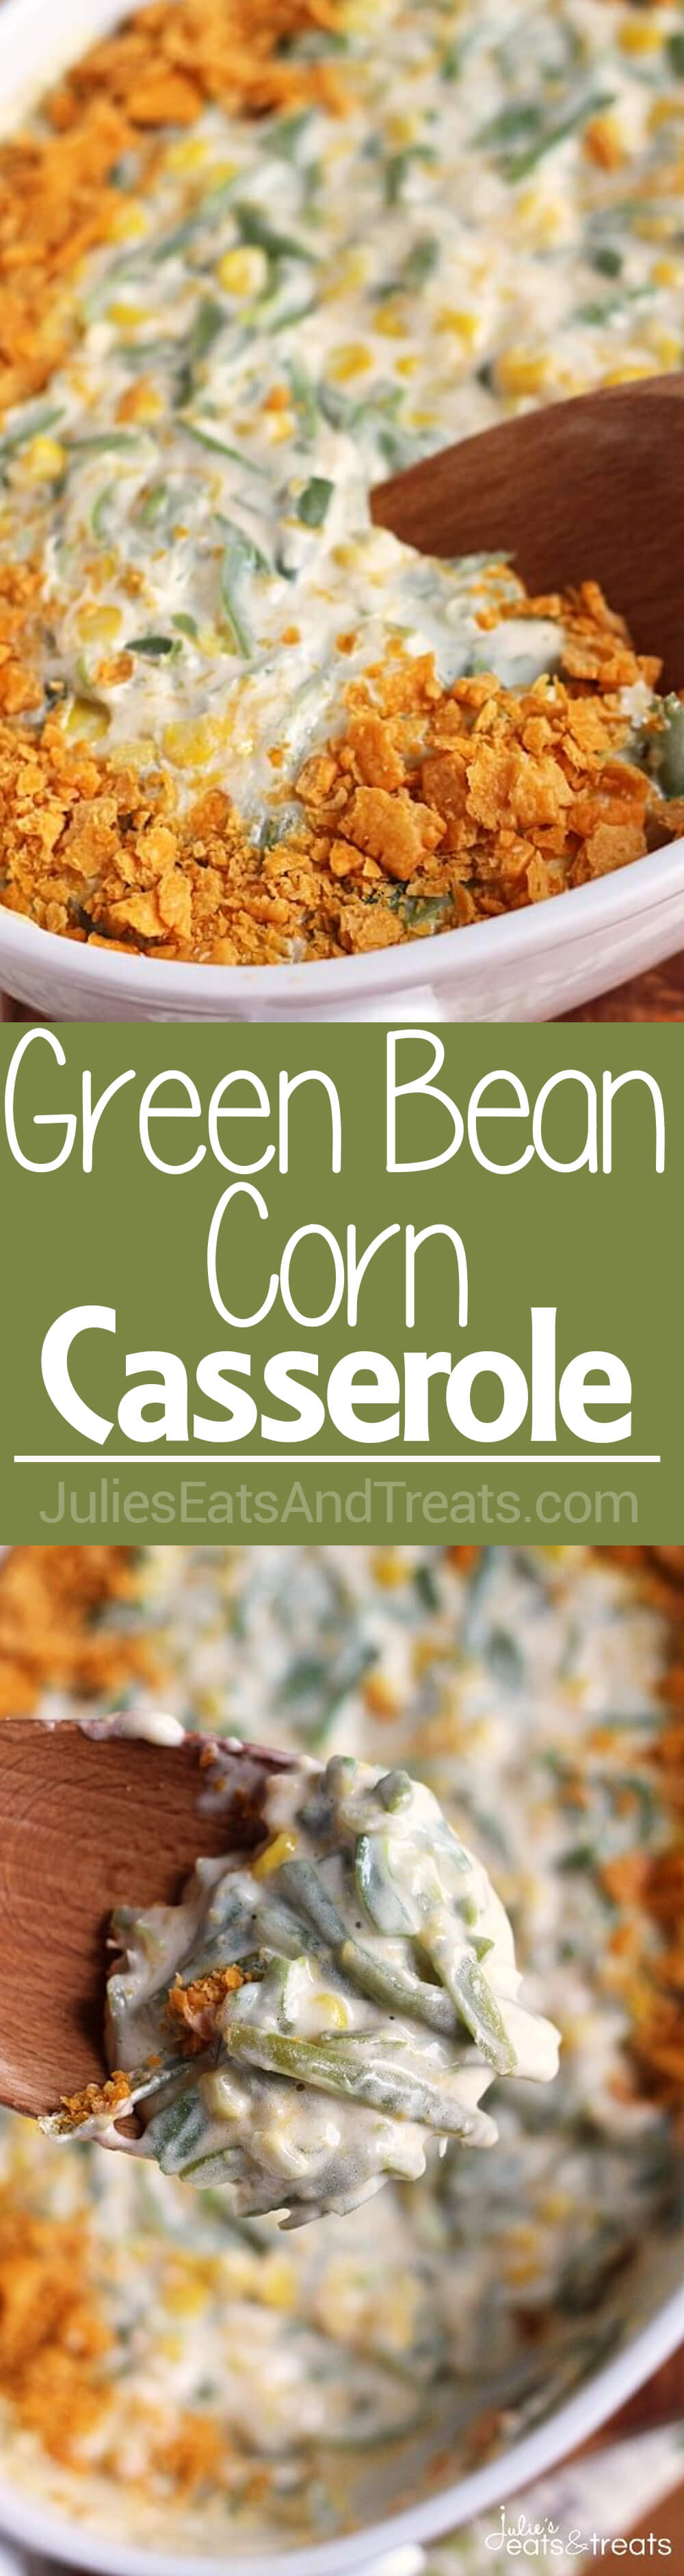 Green Bean Corn Casserole ~ Easy and Delicious Side Dish Loaded with Corn, Green...